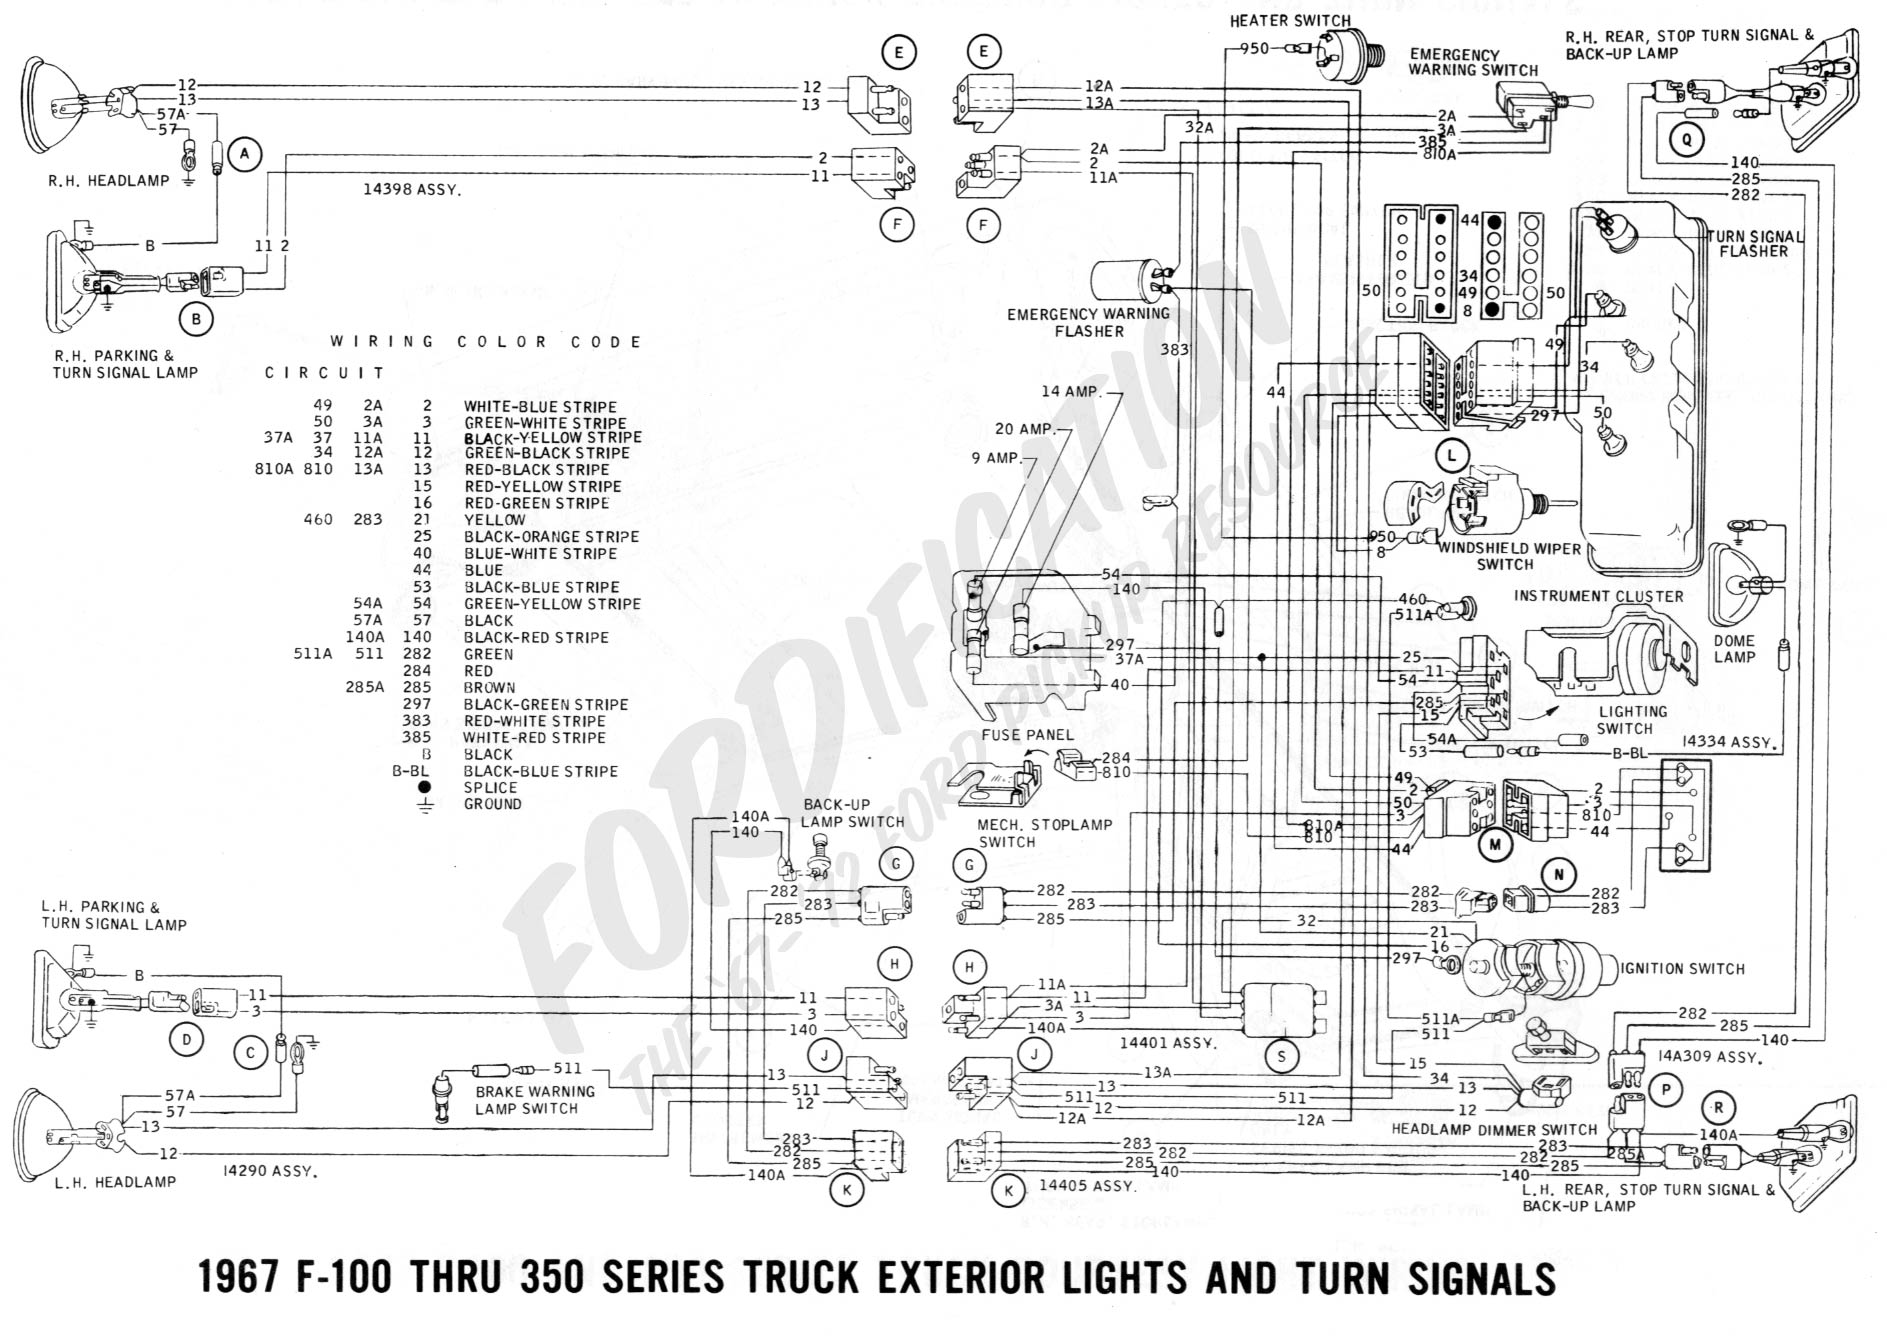 92 Mustang Turn Signal Wiring Diagram Detailed Schematics Diagram 2000 Ford  E150 Fuse Box Diagram 1979 Ford Mustang Fuse Box